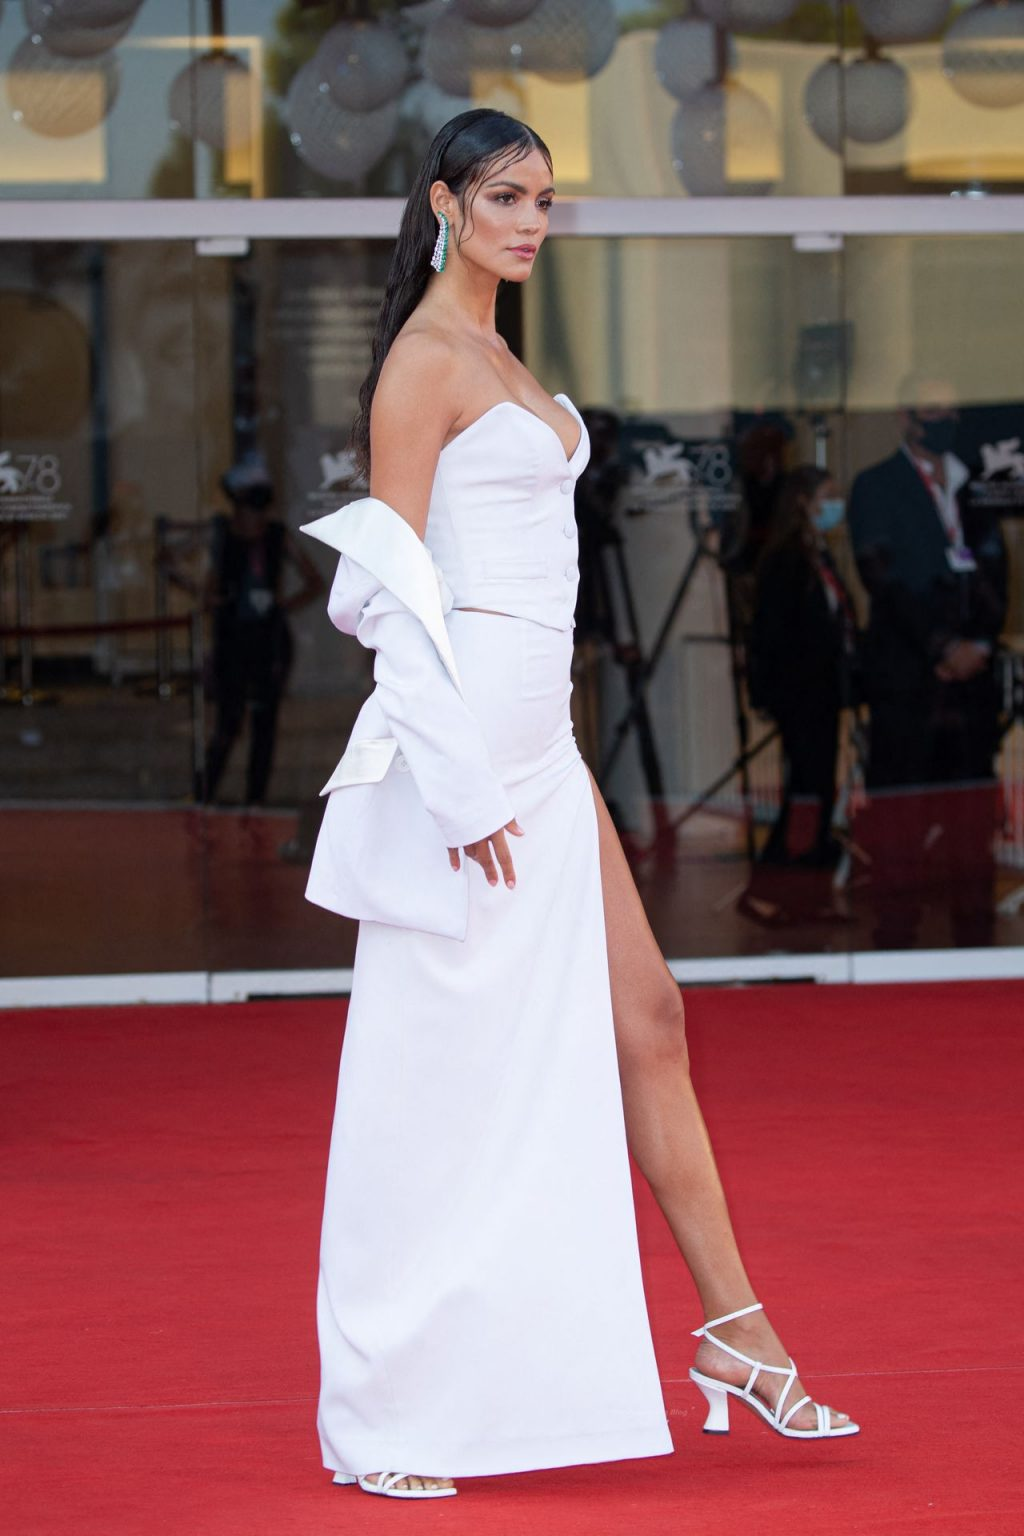 Sofia Resing Looks Hot in White at the Closing Ceremony of the 78th Venice International Film Festival (97 Photos)